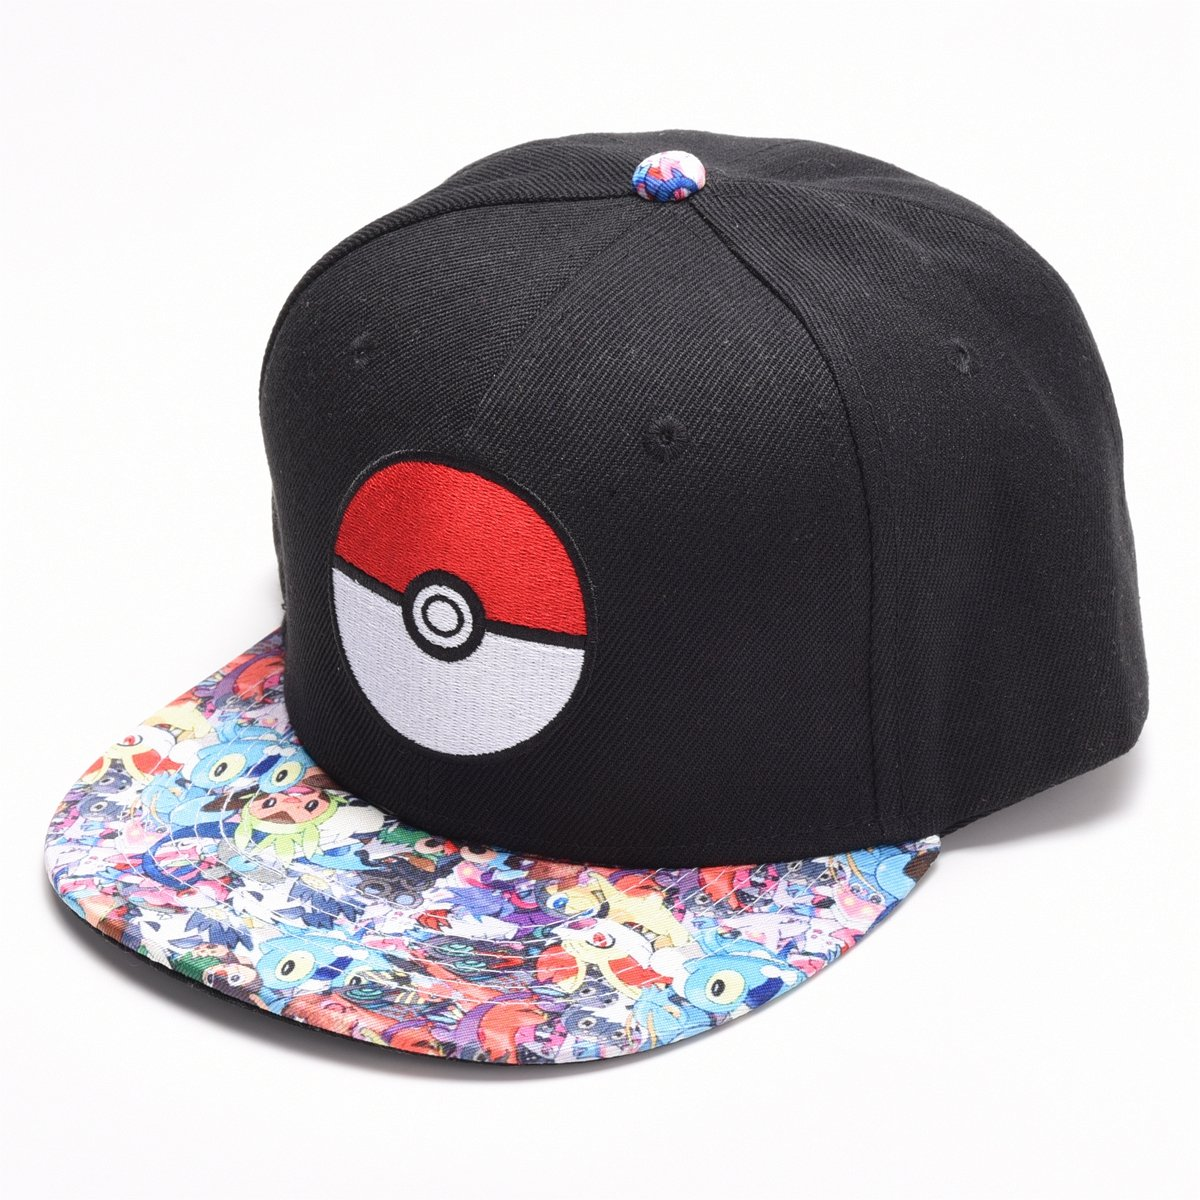 YEAM Pokemon Hat Kids Pokeball Youth Snapback Hat For Boy And Girl d94764b6145a